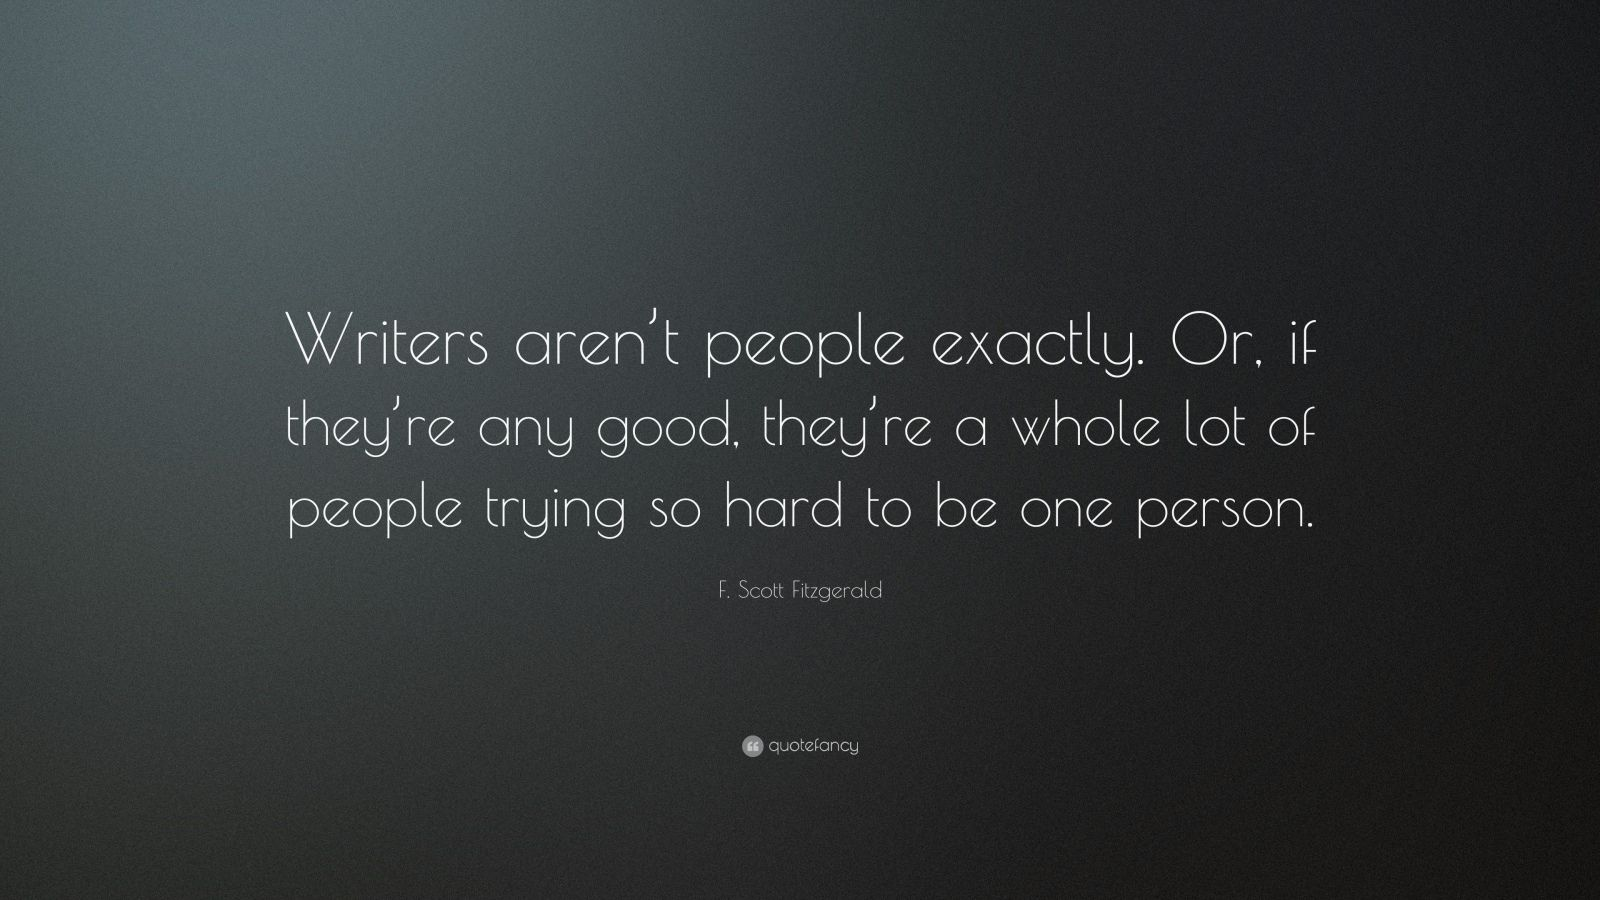 """F. Scott Fitzgerald Quote: """"Writers aren't people exactly. Or, if they're any good, they're a whole lot of people trying so hard to be one person."""""""